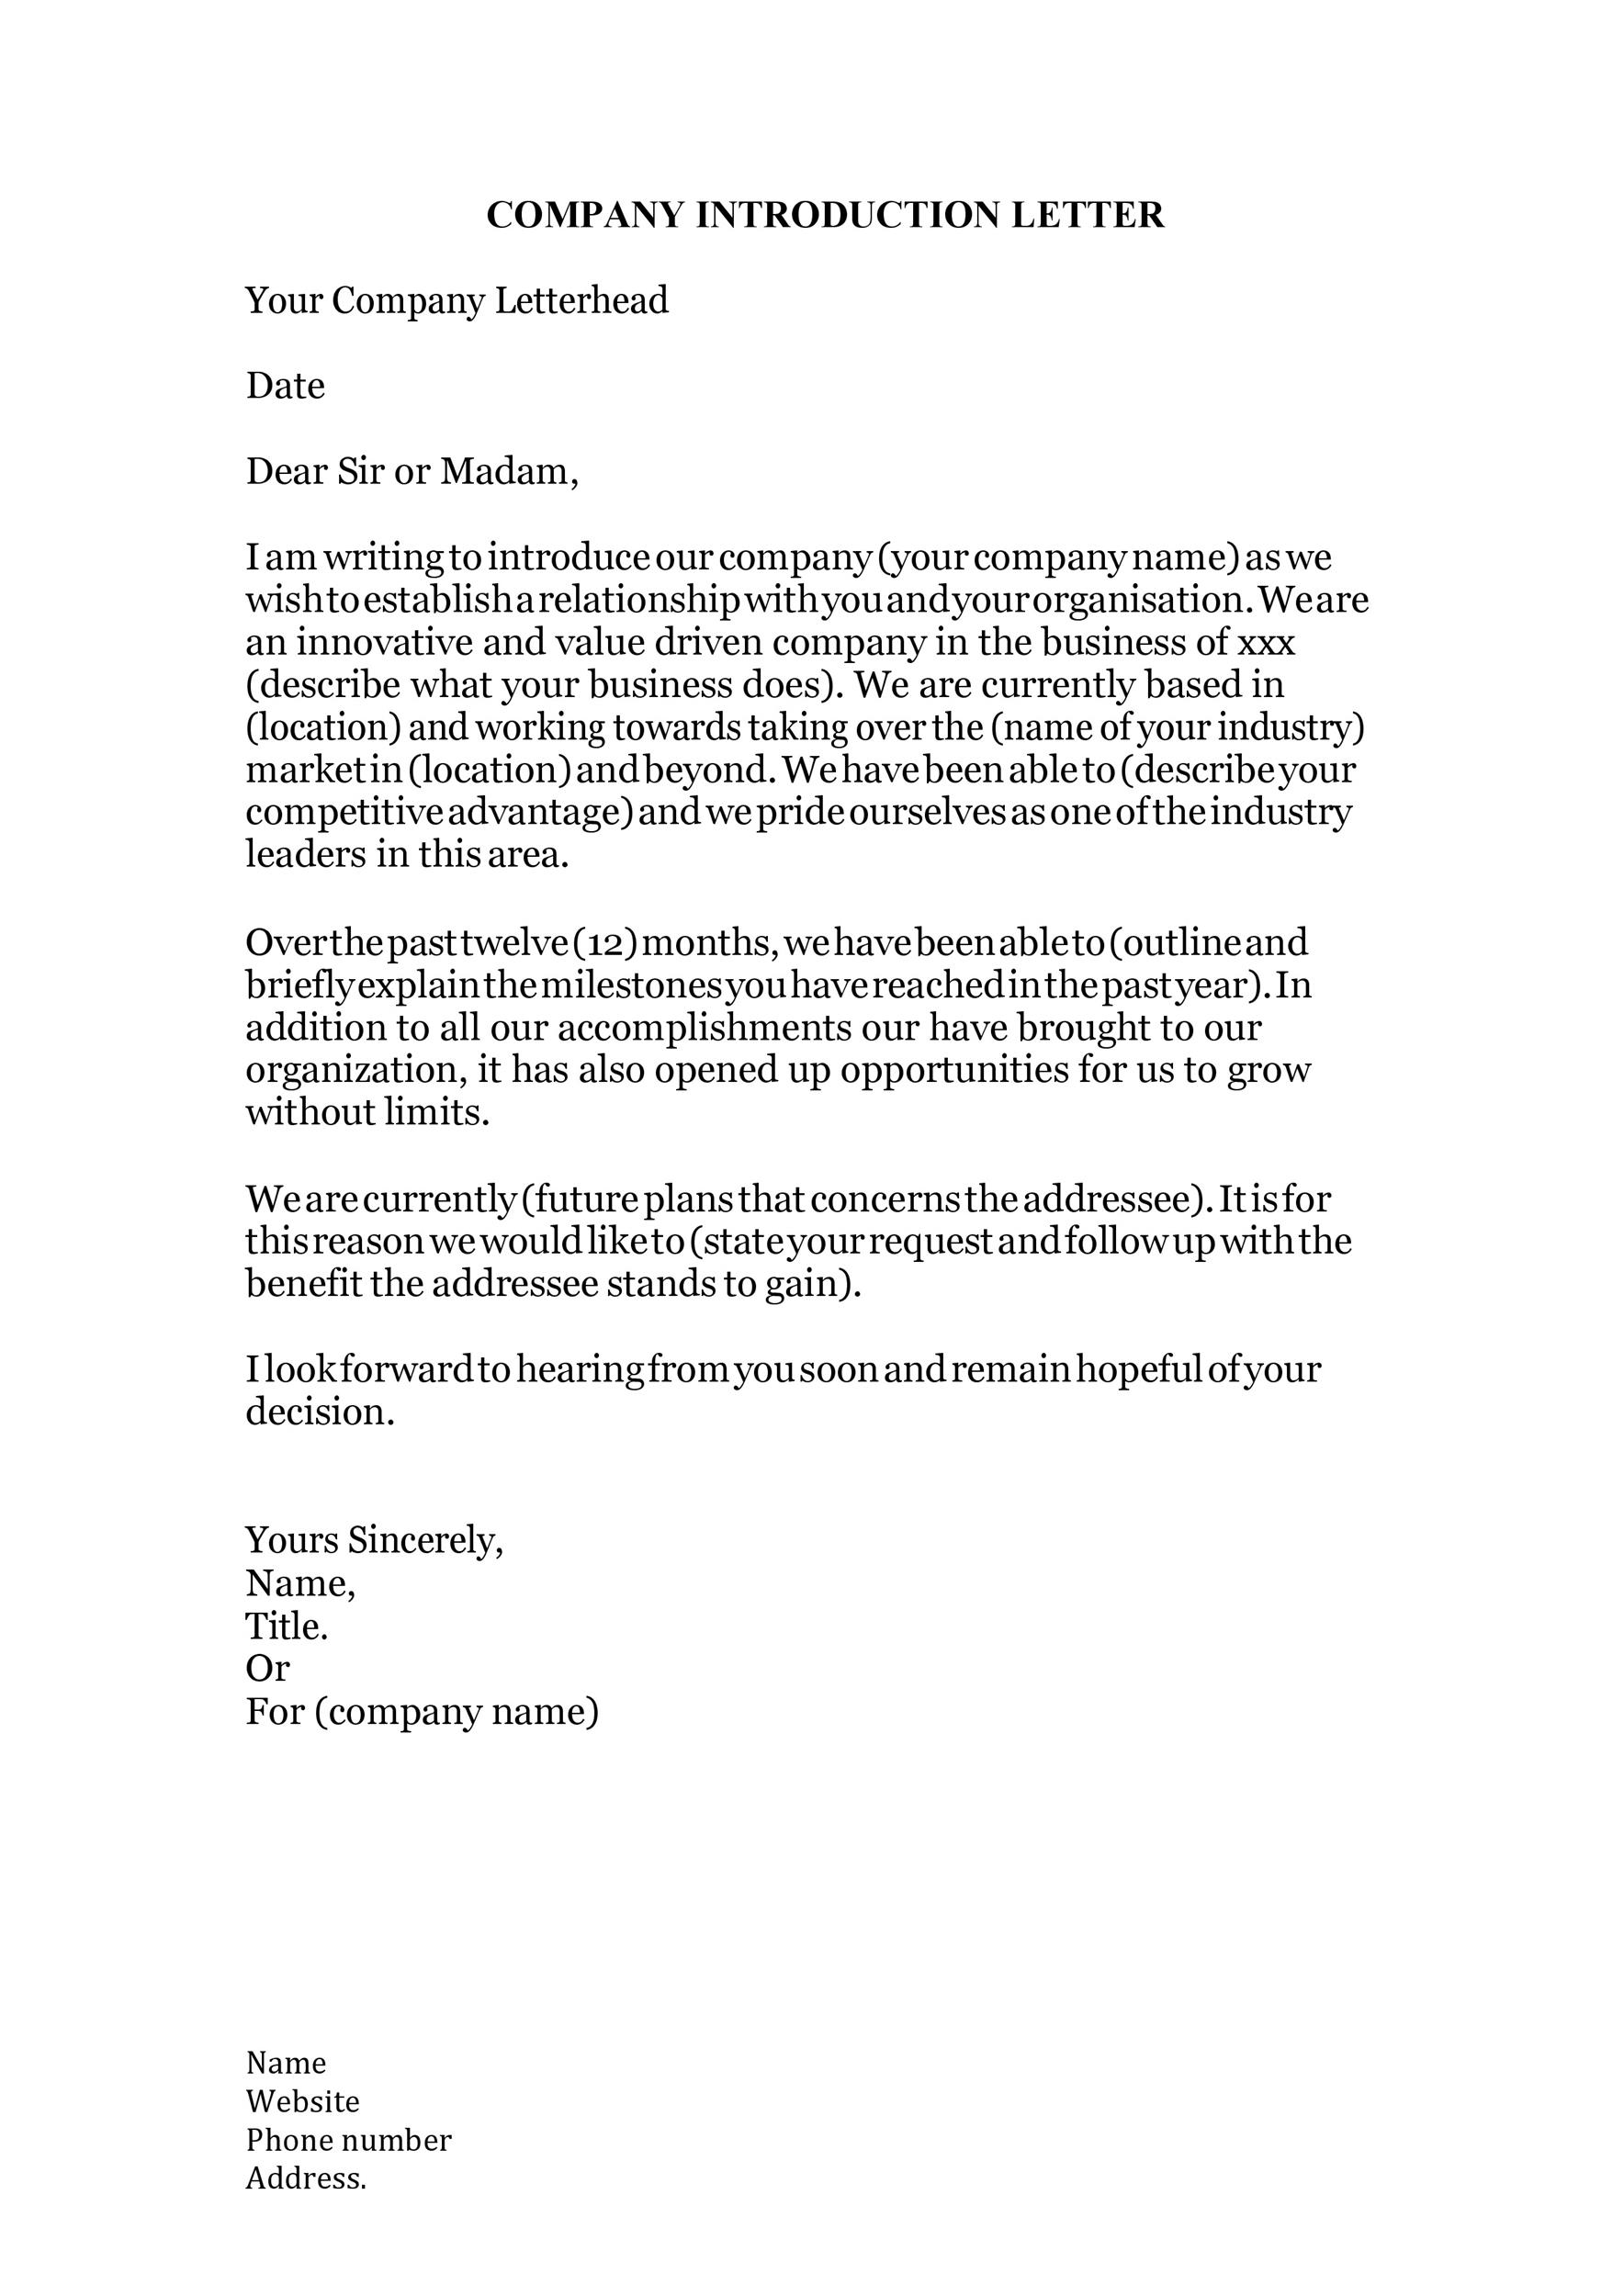 Free business introduction letter 06